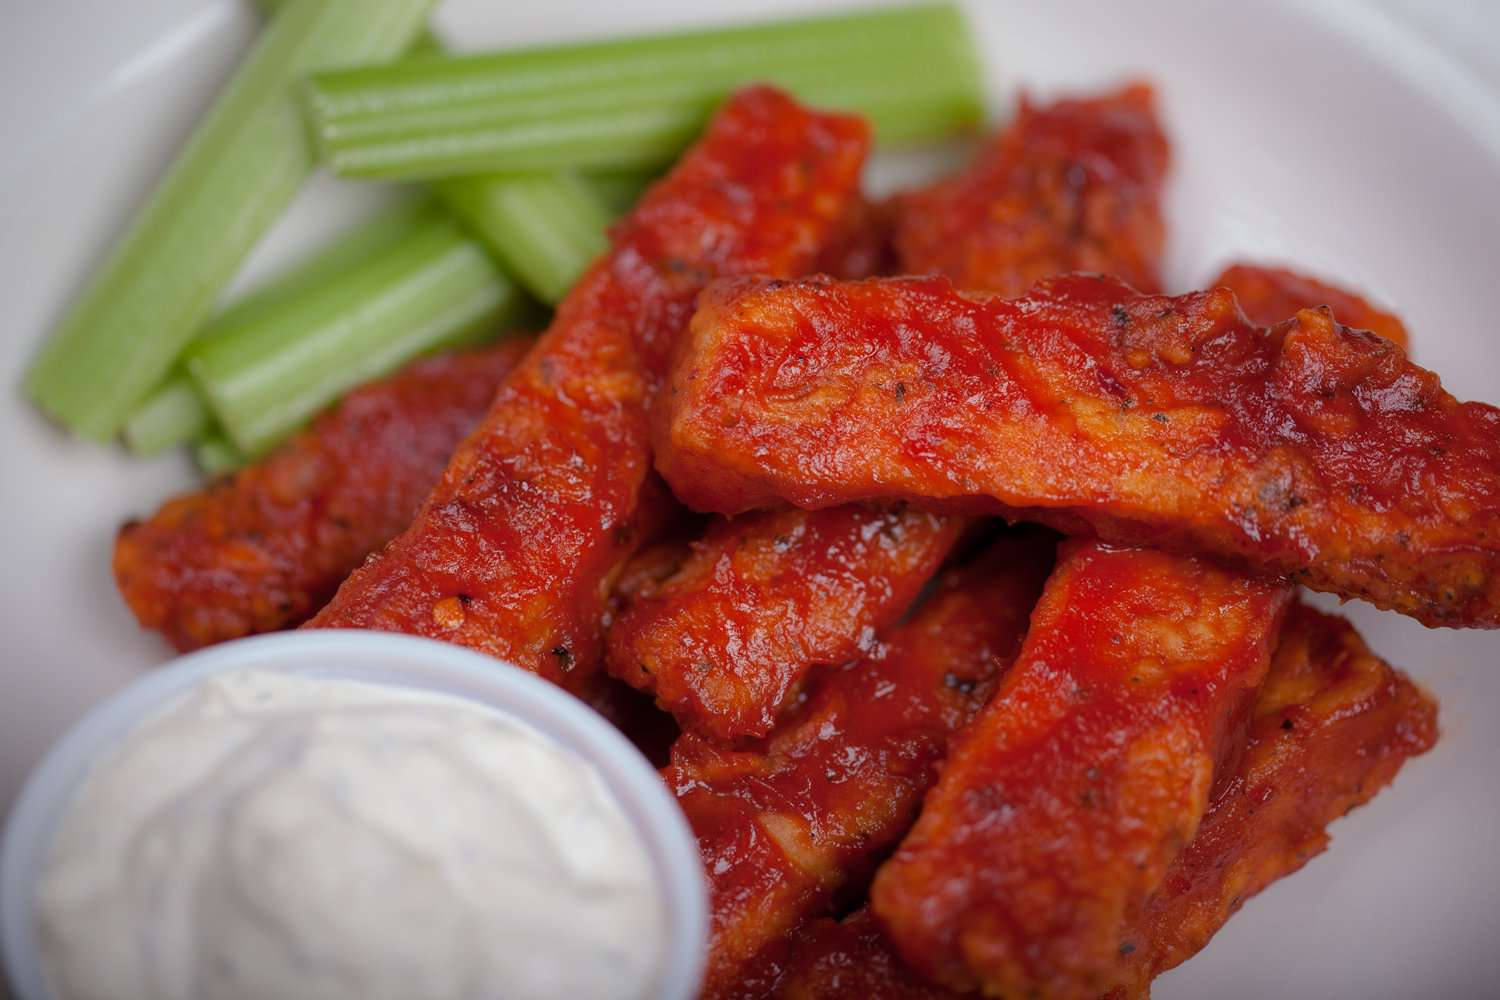 Vegan buffalo chicken with ranch dipping sauce and celery